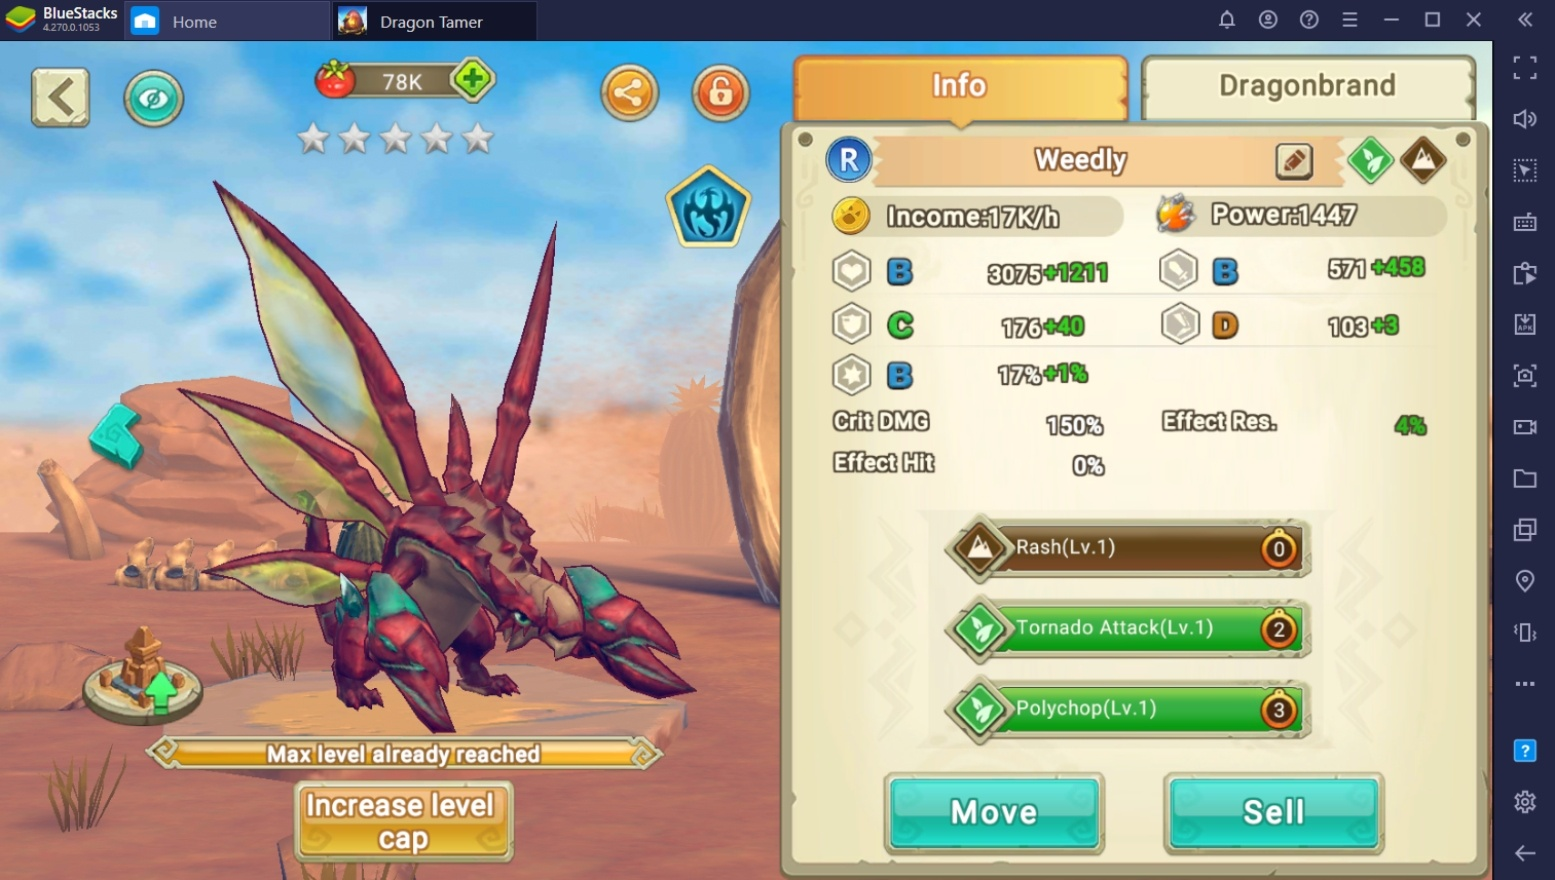 Dragon Tamer PvP Guide – Make The Strongest Team!